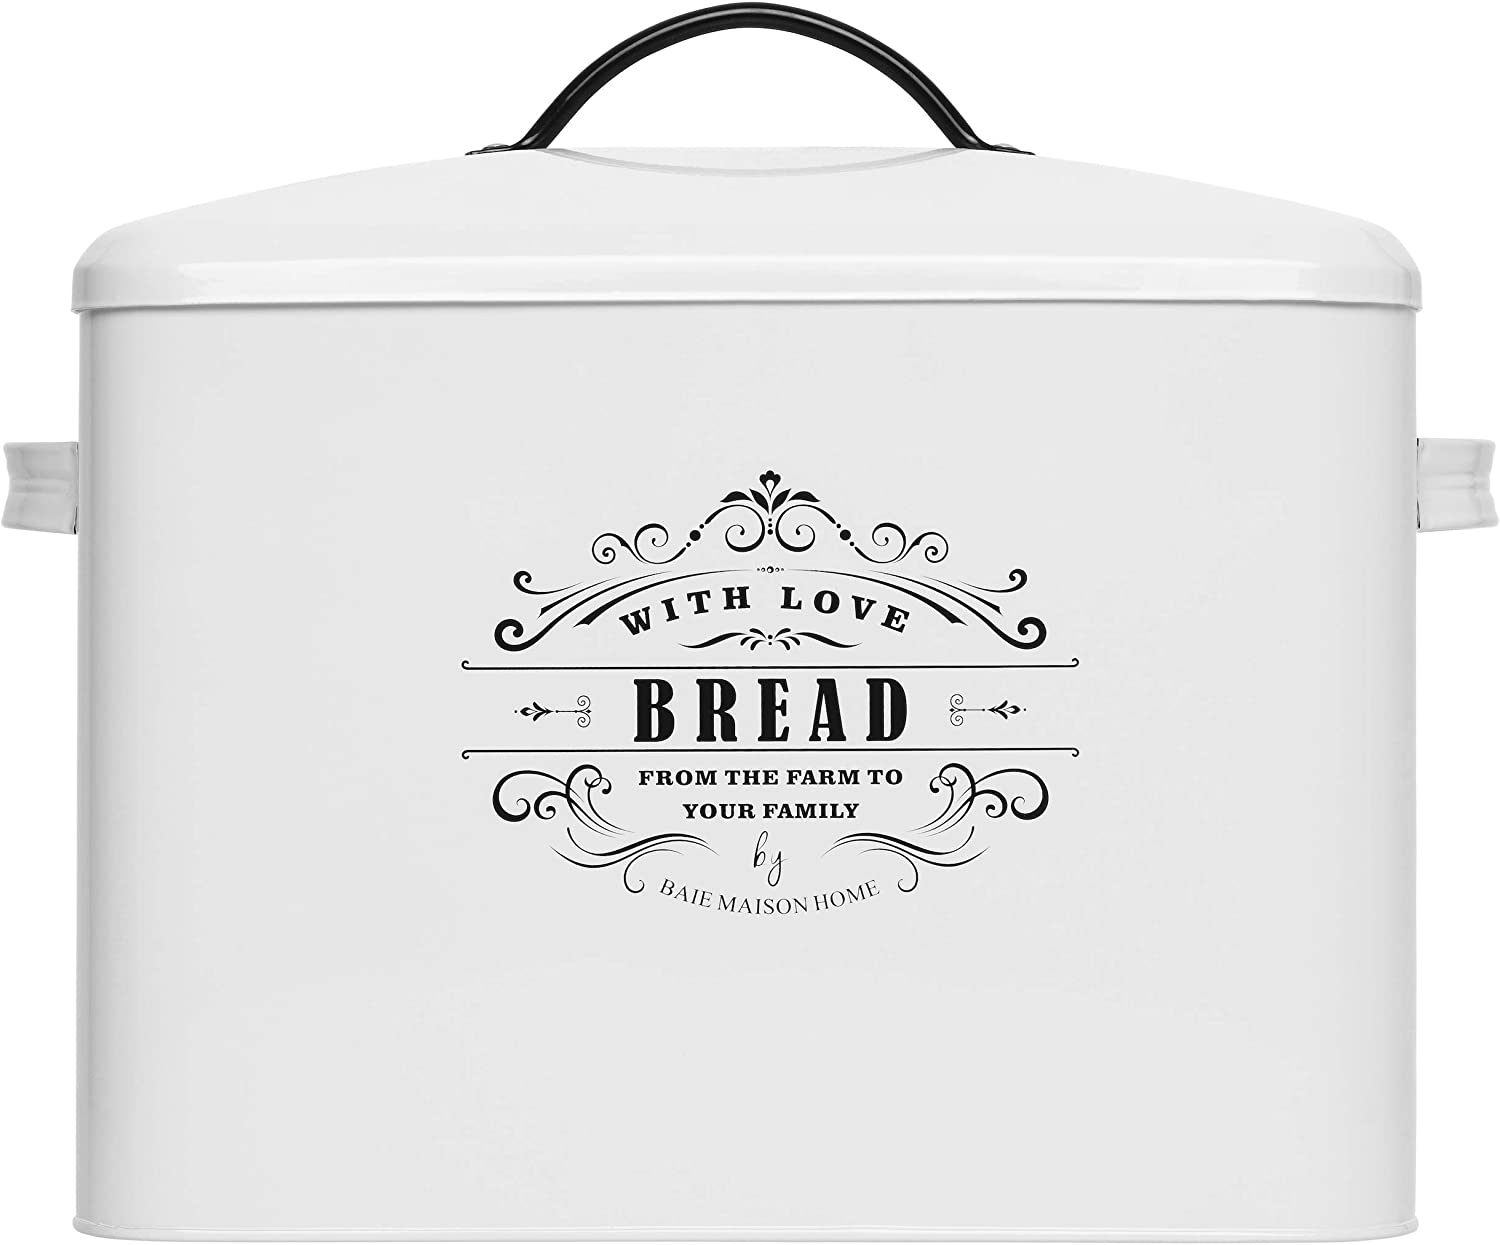 Extra Large White Bread box - Bread Boxes for Kitchen Counter Holds 2+ Loaves for All Your Bread Storage | Bread Container Counter Organizer to suit Farmhouse Kitchen Decor, Vintage Kitchen, Rustic